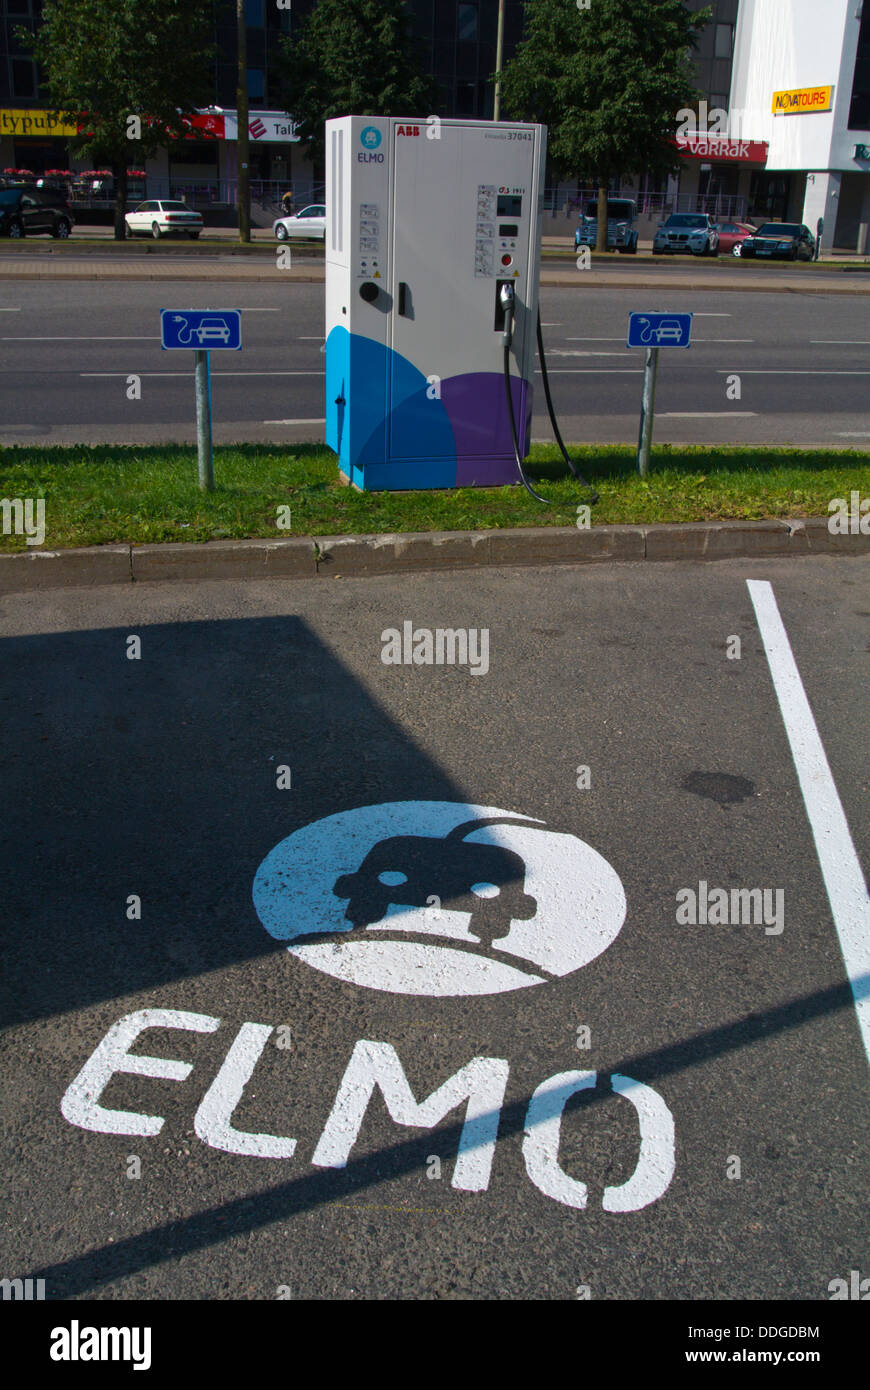 Elmo electric car charge station point Tallinn city business district Tallinn Estonia the Baltics Europe Stock Photo